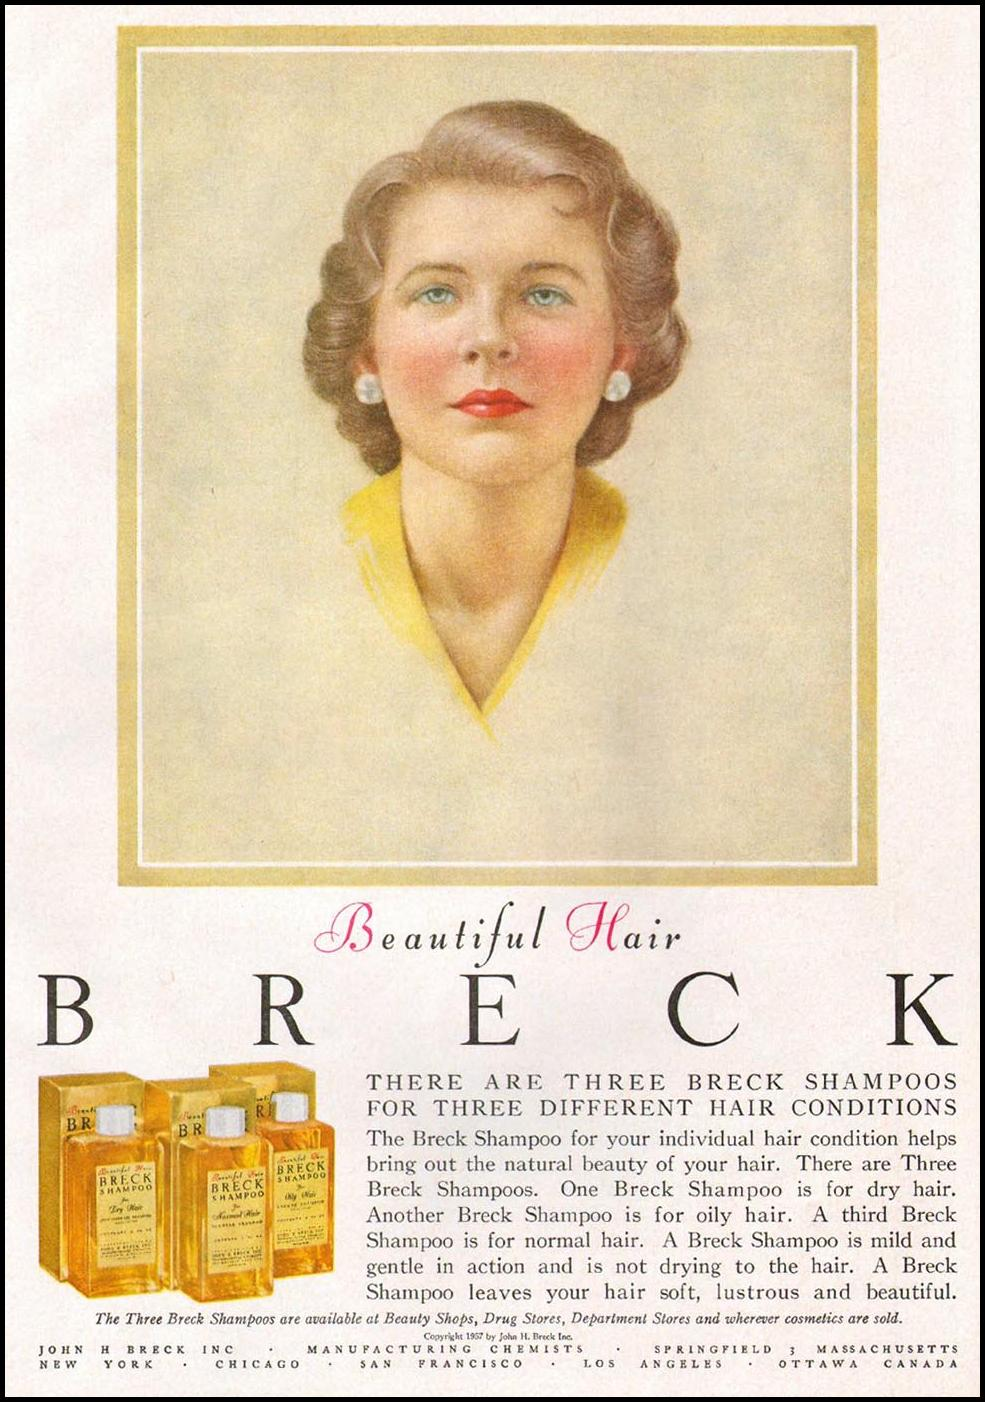 BRECK SHAMPOO GOOD HOUSEKEEPING 05/01/1957 p. 169